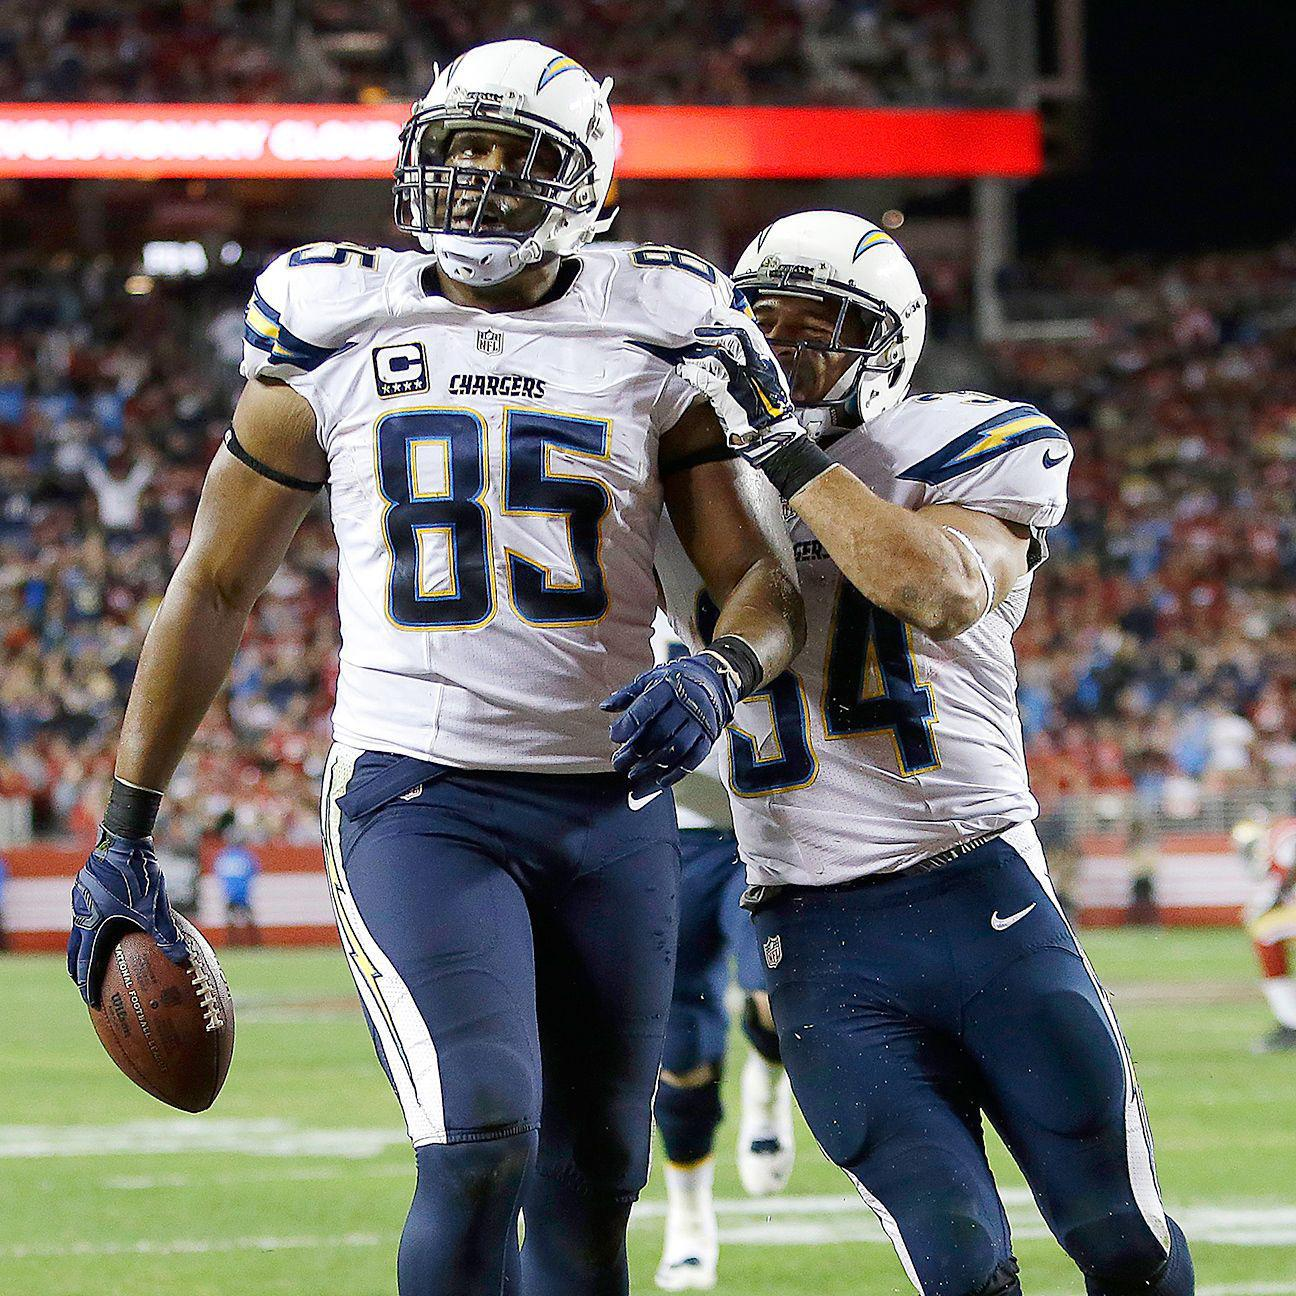 San Diego Chargers Blog: Nearing The End Of His Career, Antonio Gates Focused On